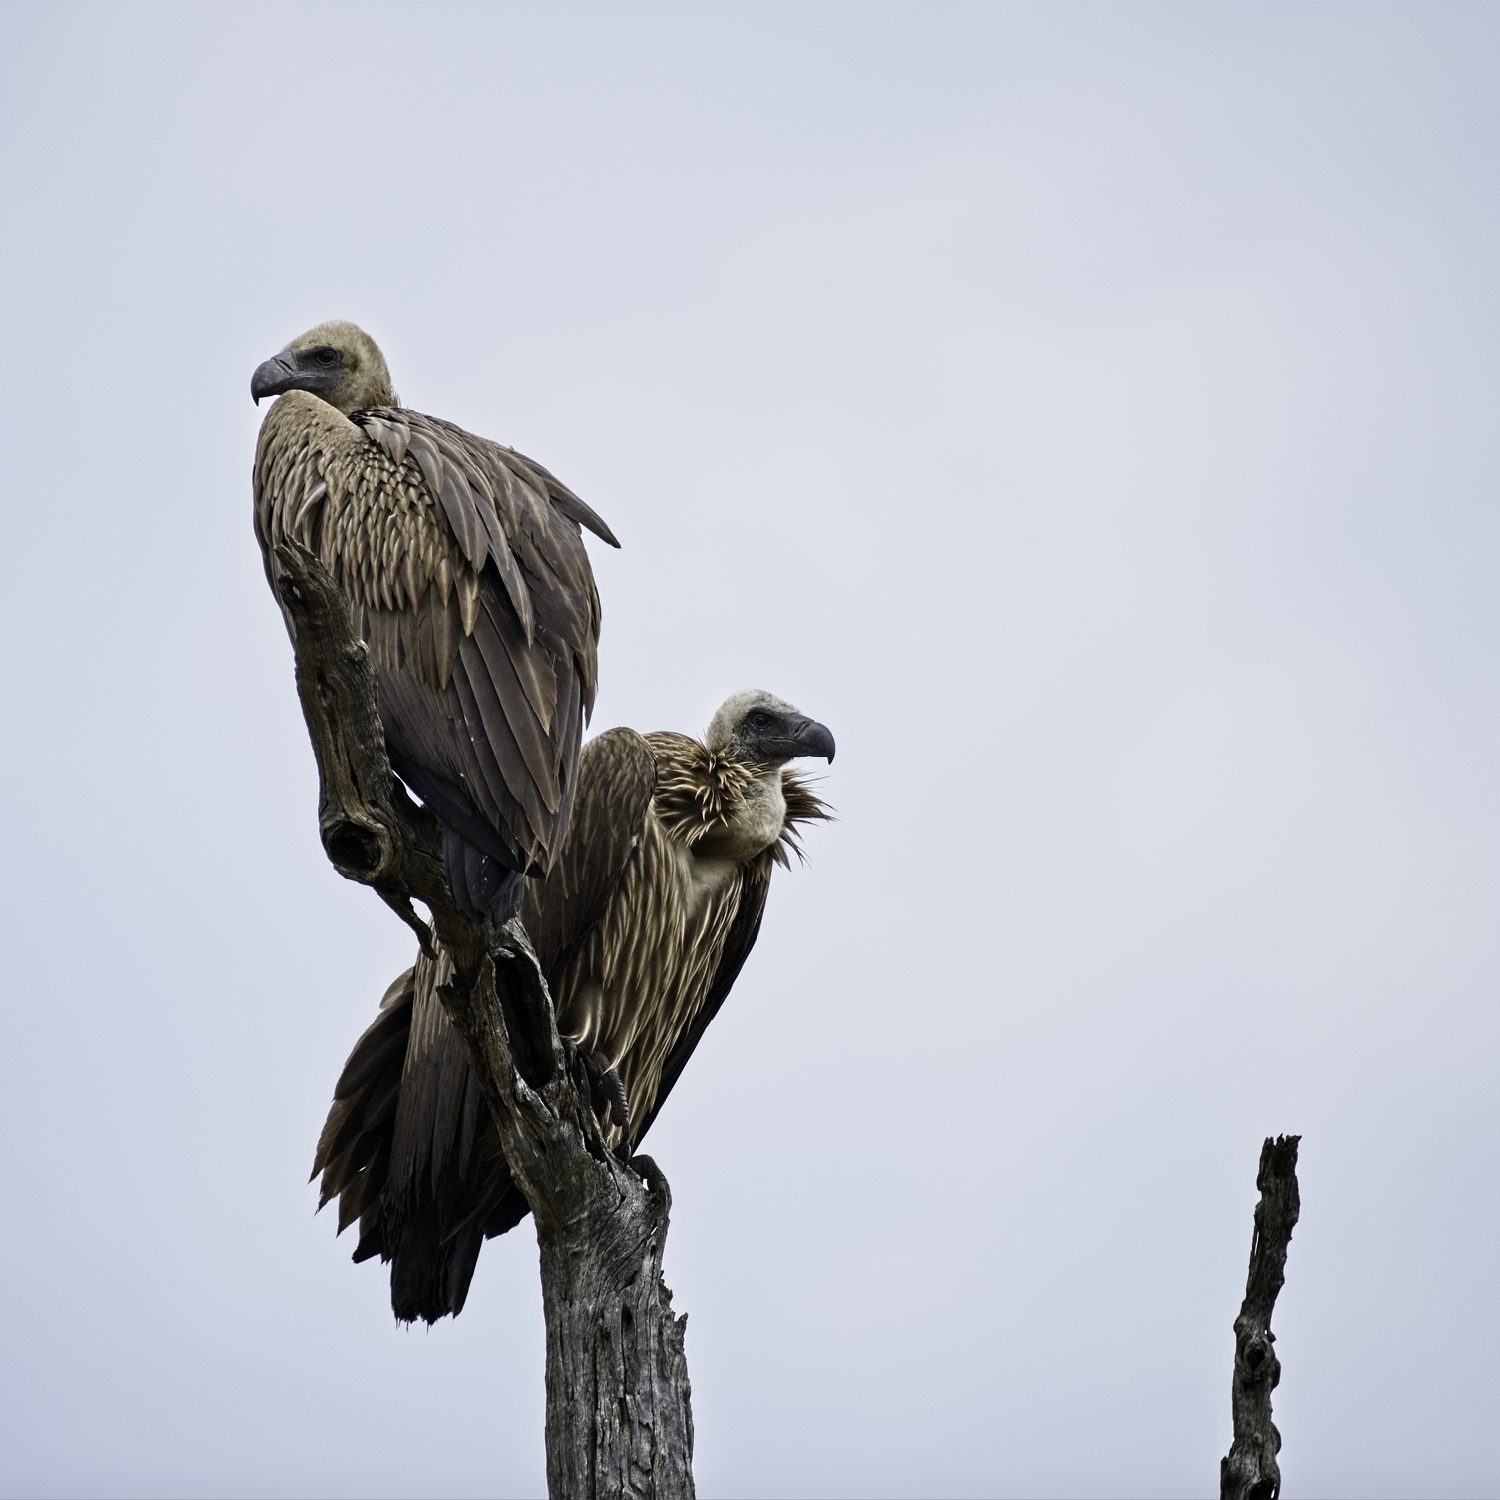 Two of a group of about a dozen vultures waiting for the apex predators to finish before picking the carcass